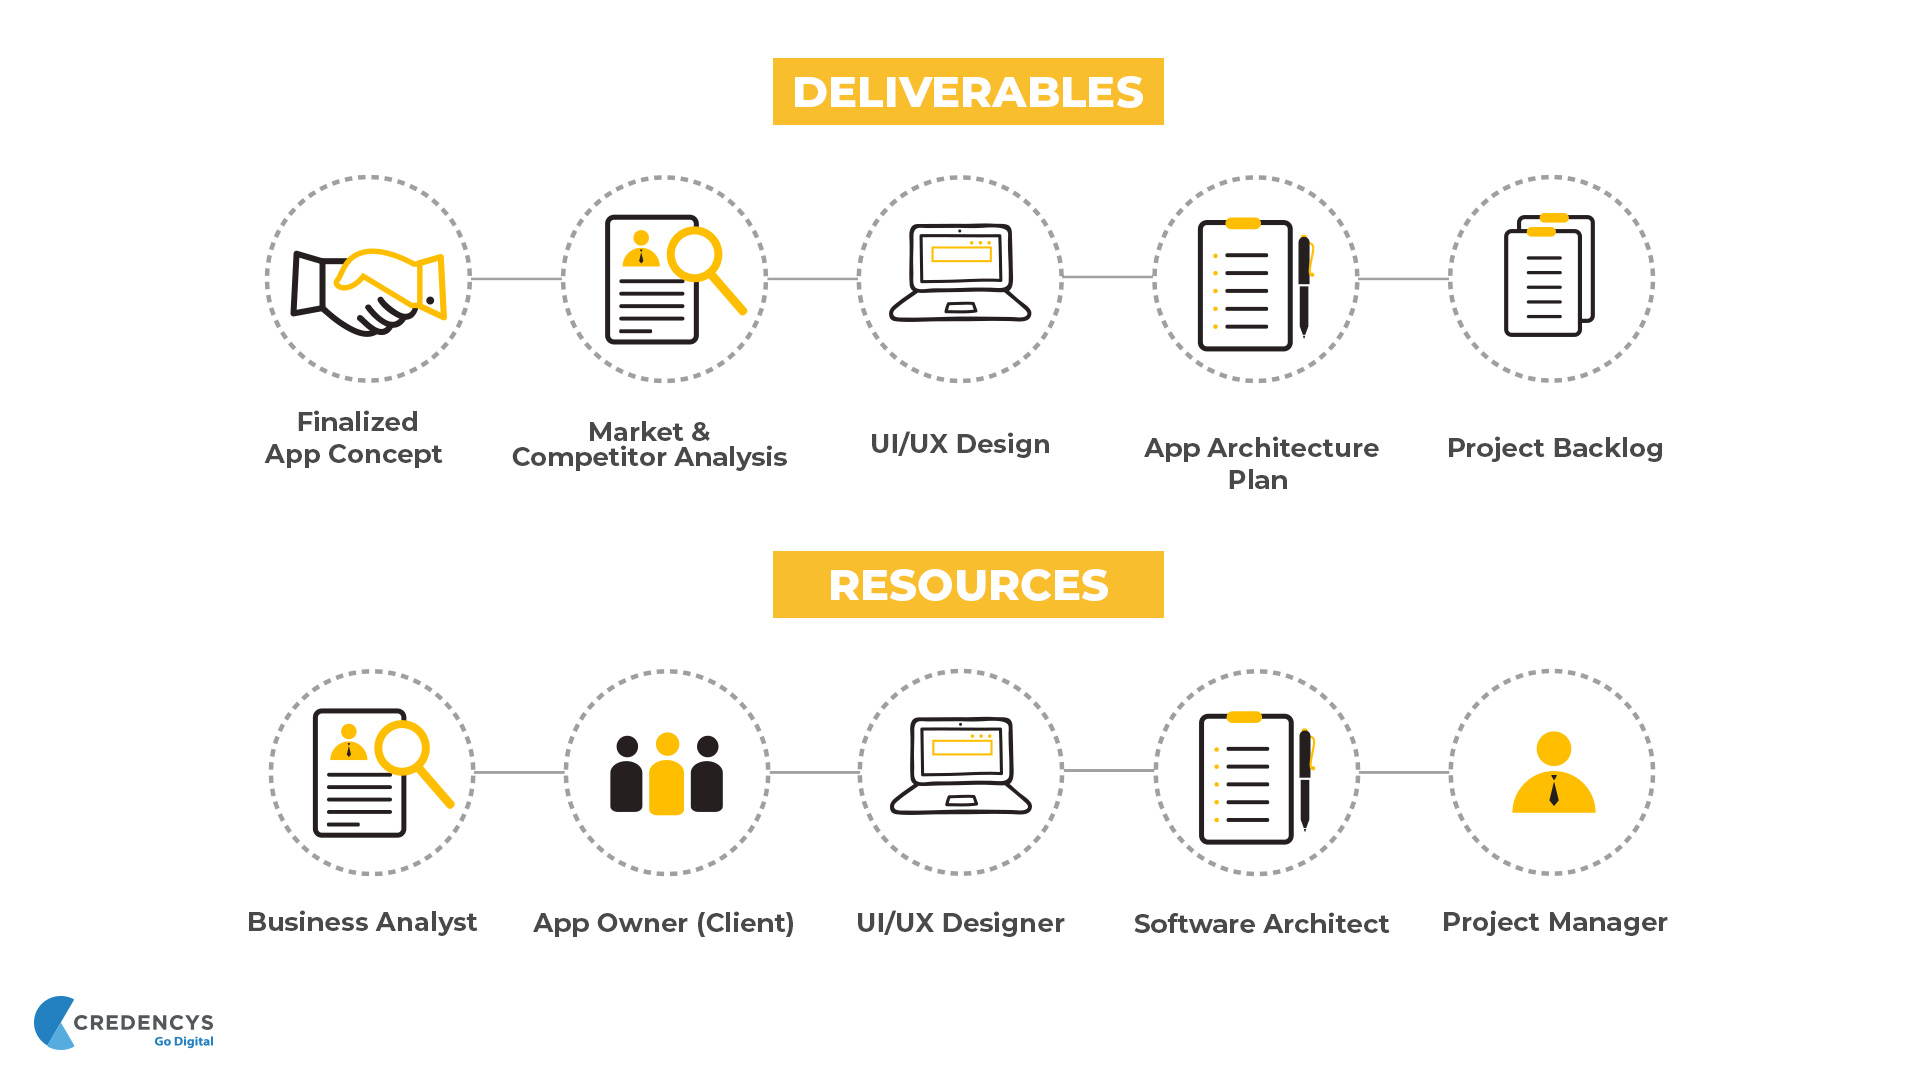 Deliverables and Resources are defined in Discovery